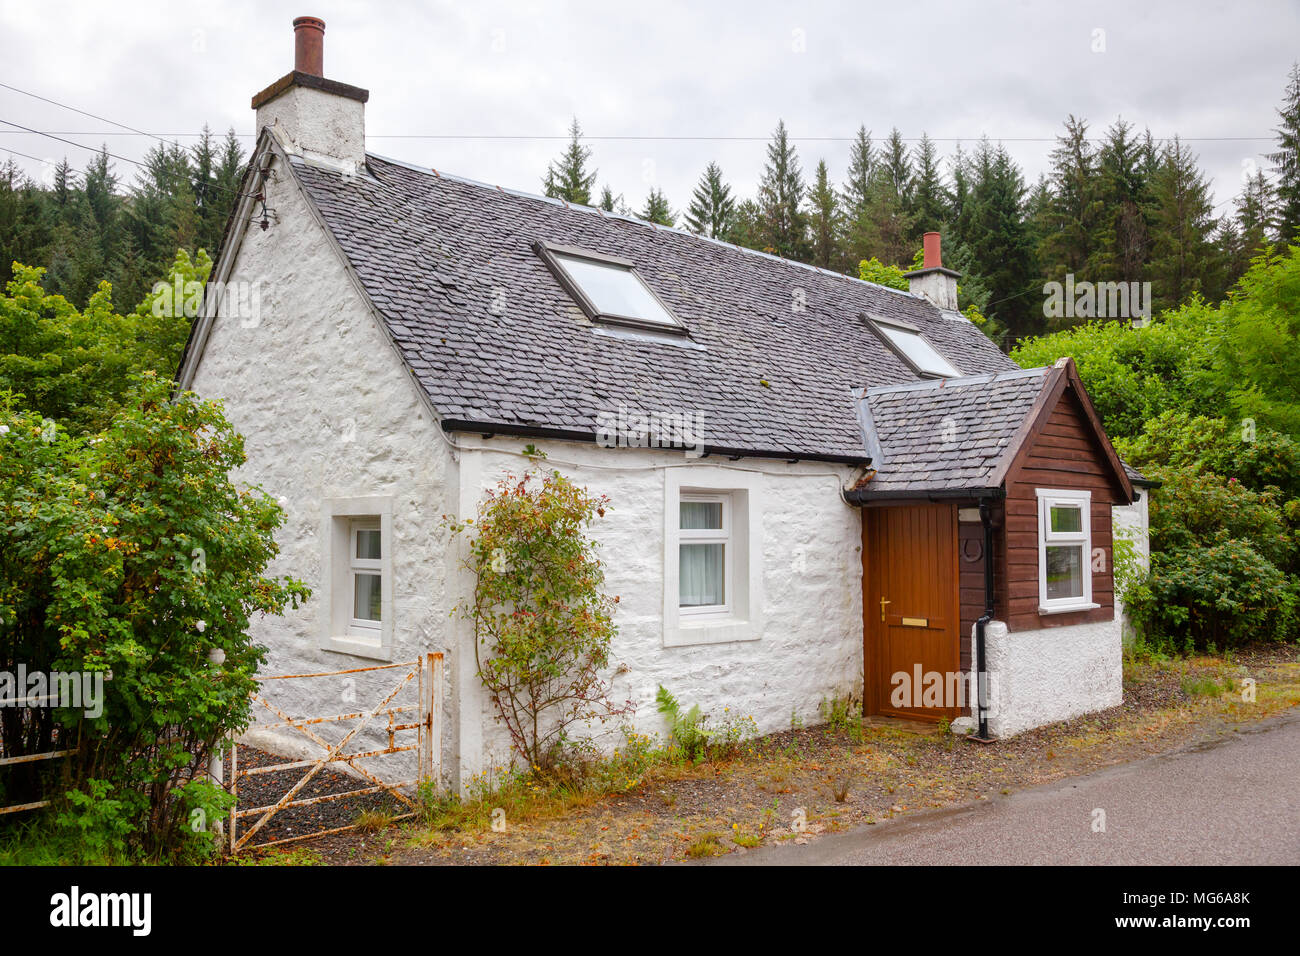 A typical traditional country slate roof cottage with white walls in rural Scotland UK - Stock Image